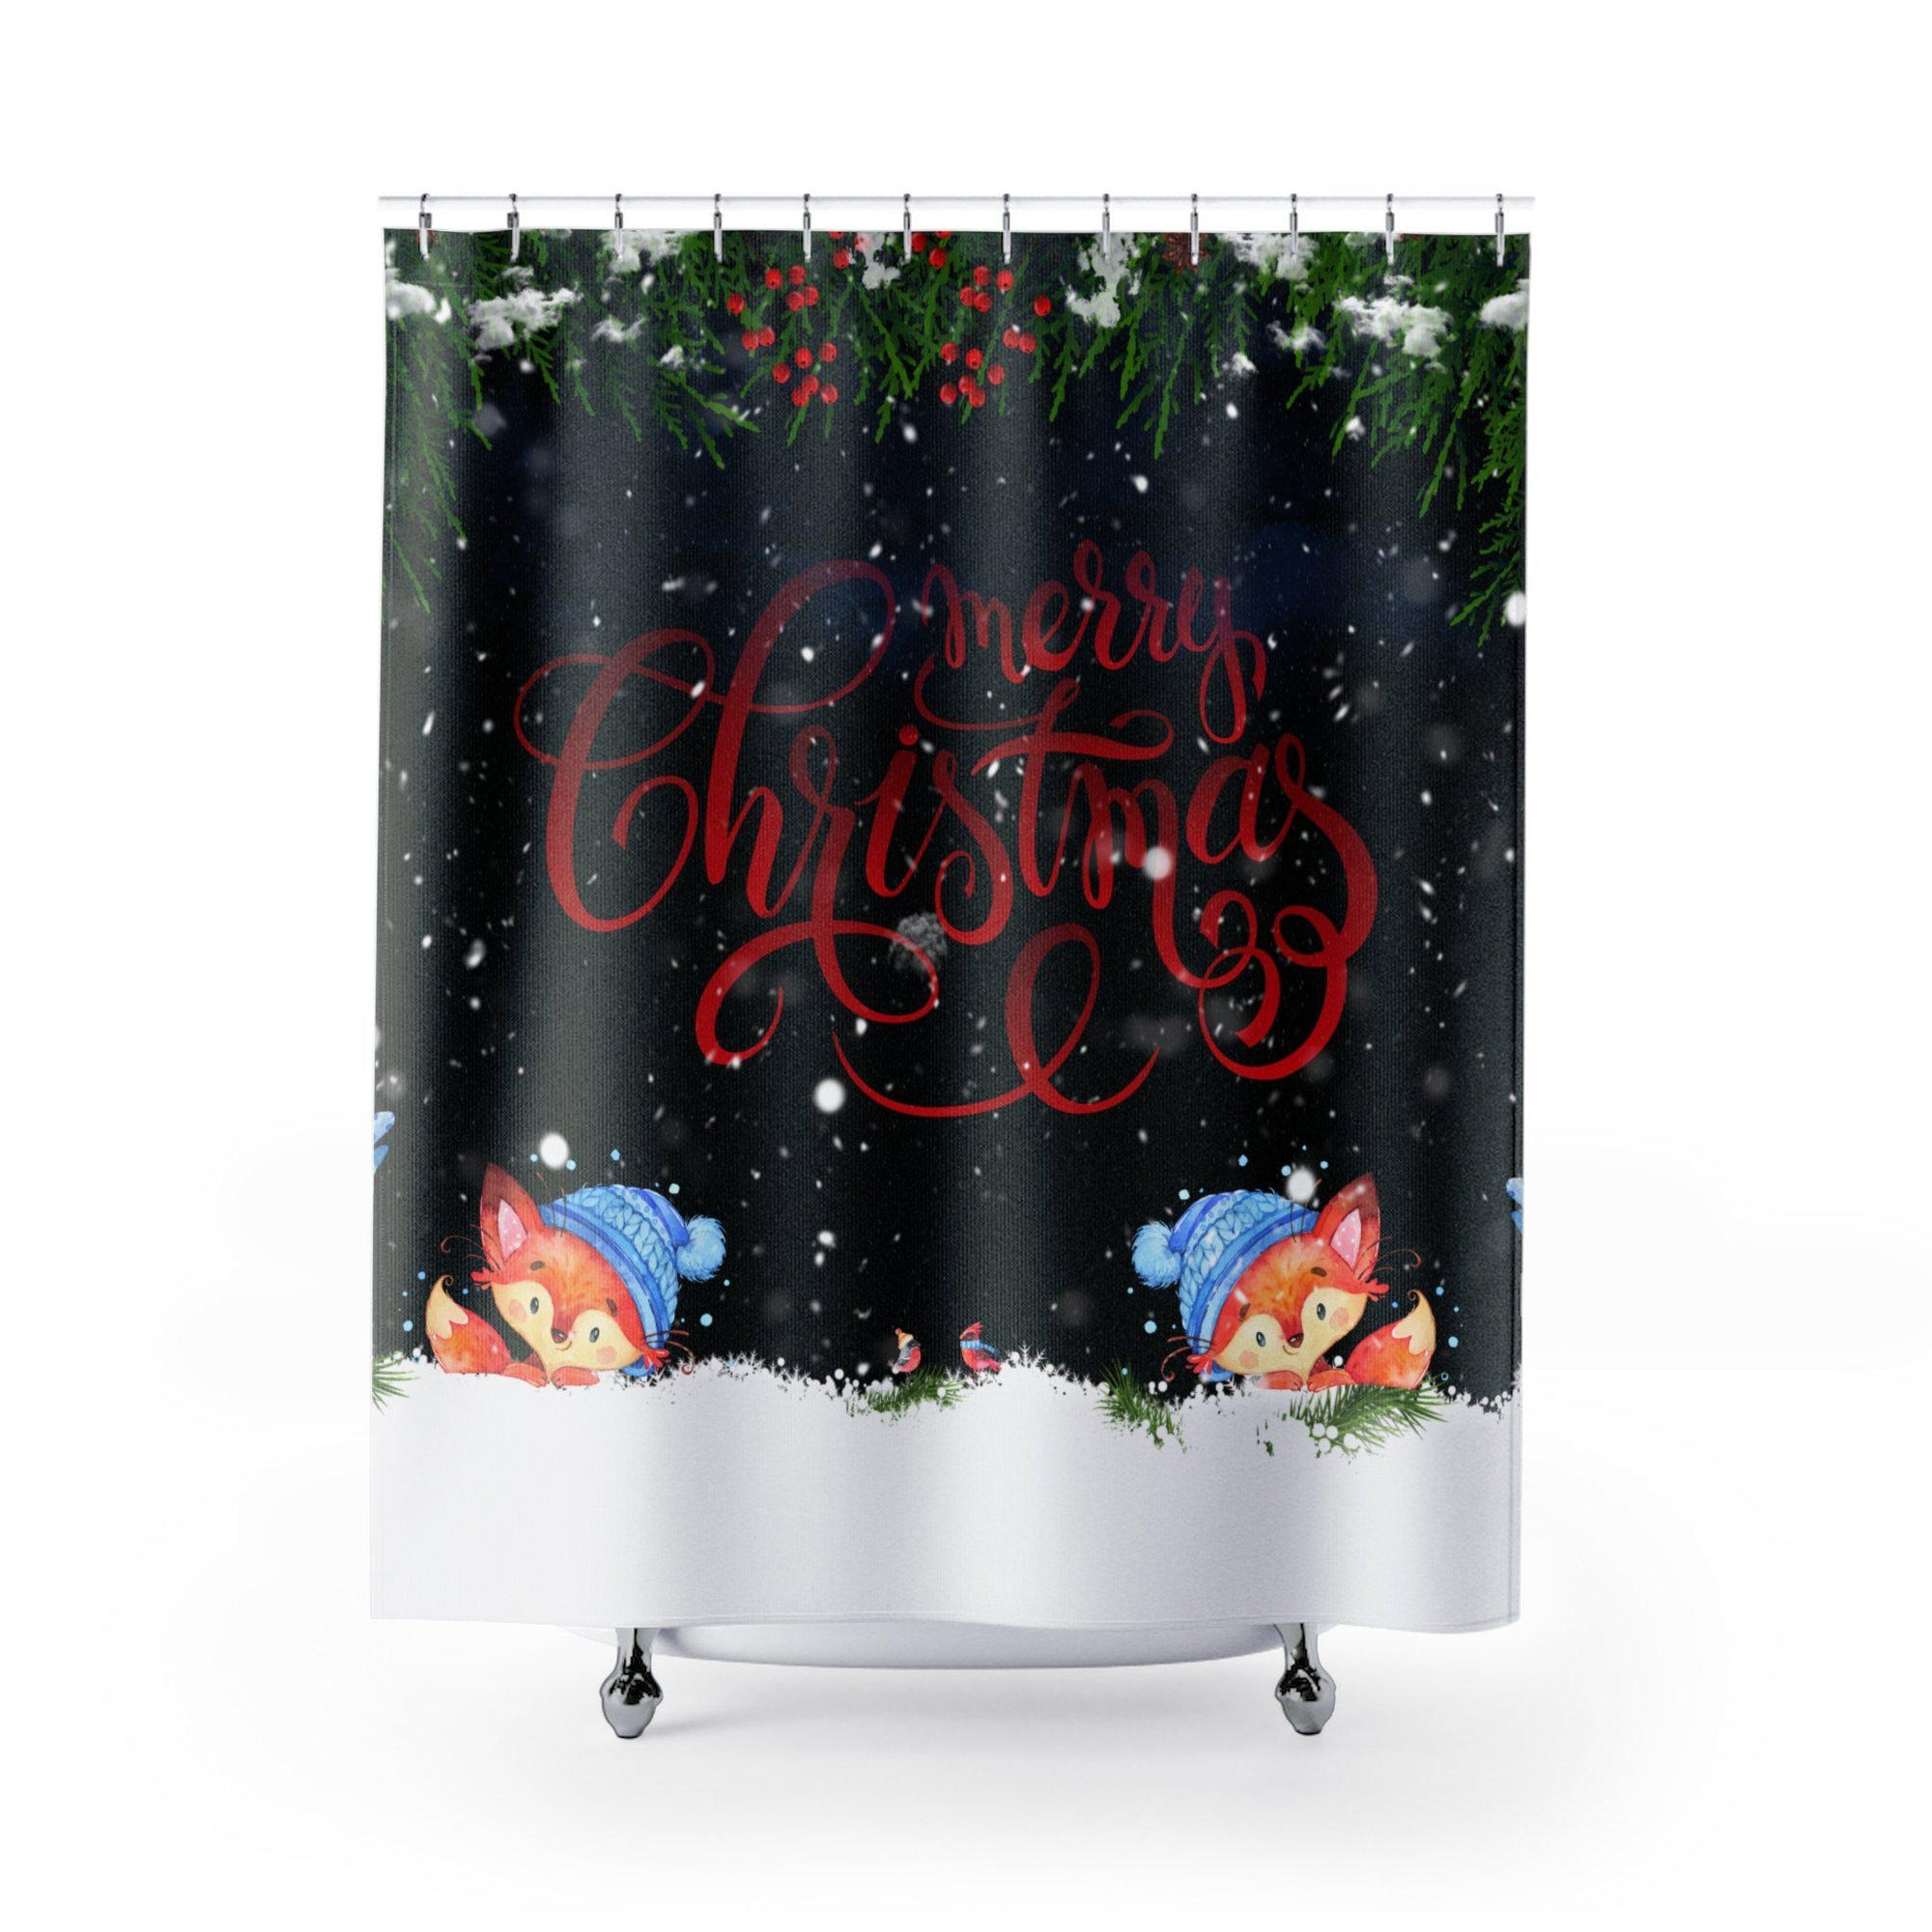 Christmas shower Curtains-Bath - Bathroom Accessories - Shower Accessories - Shower Curtains-Maison d'Elite-71x74-Multi-Poly-Très Elite